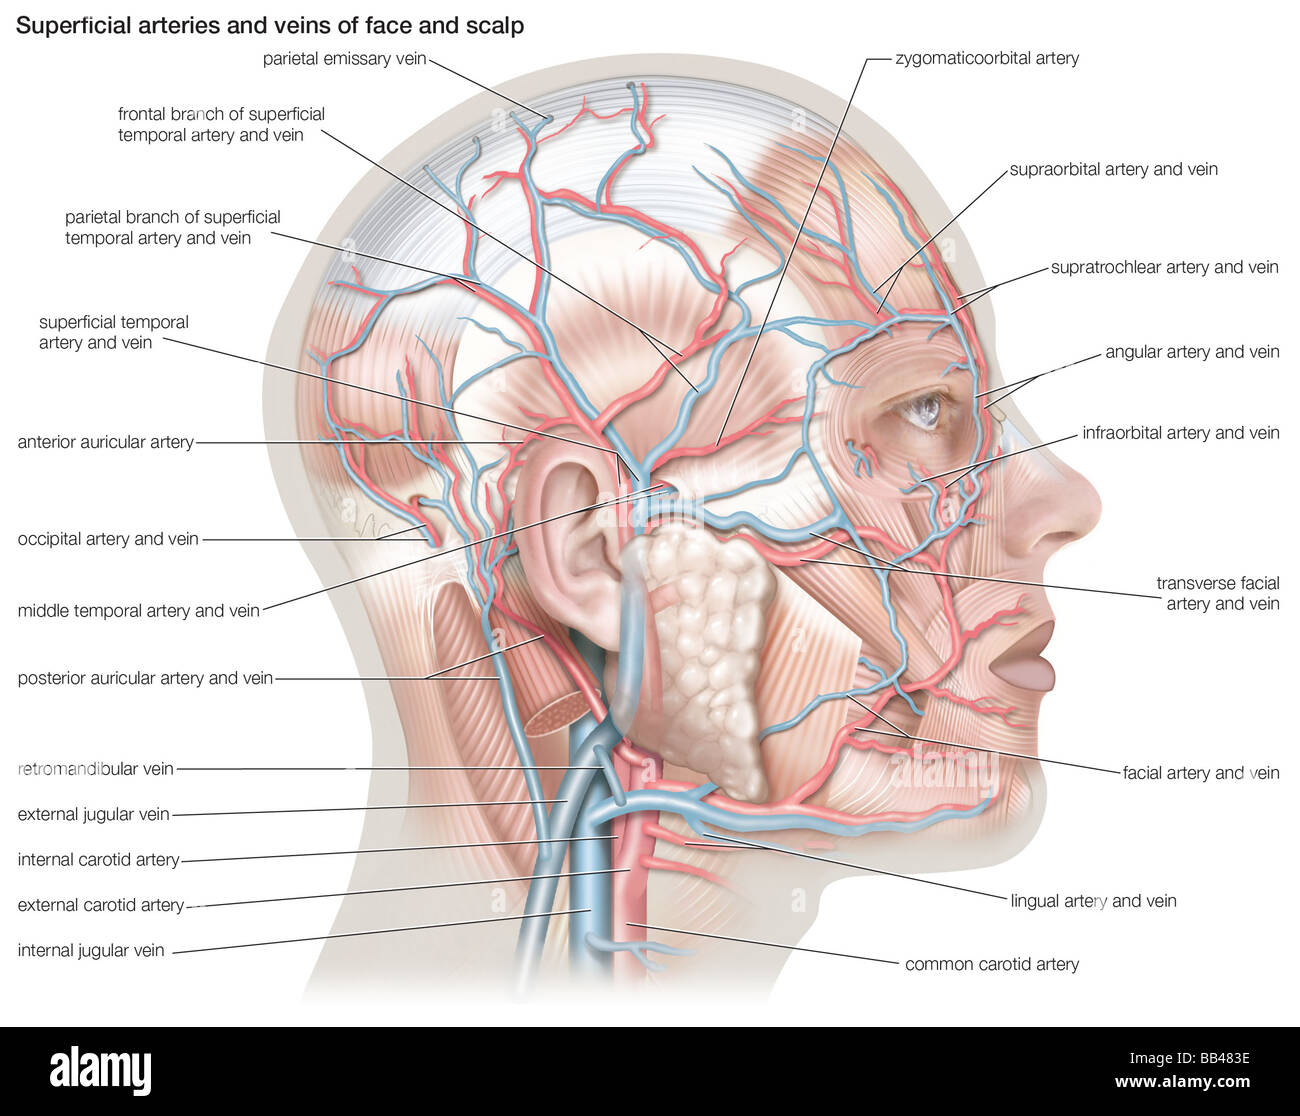 hight resolution of superficial arteries and veins of the face and scalp stock photo artery diagram scalp